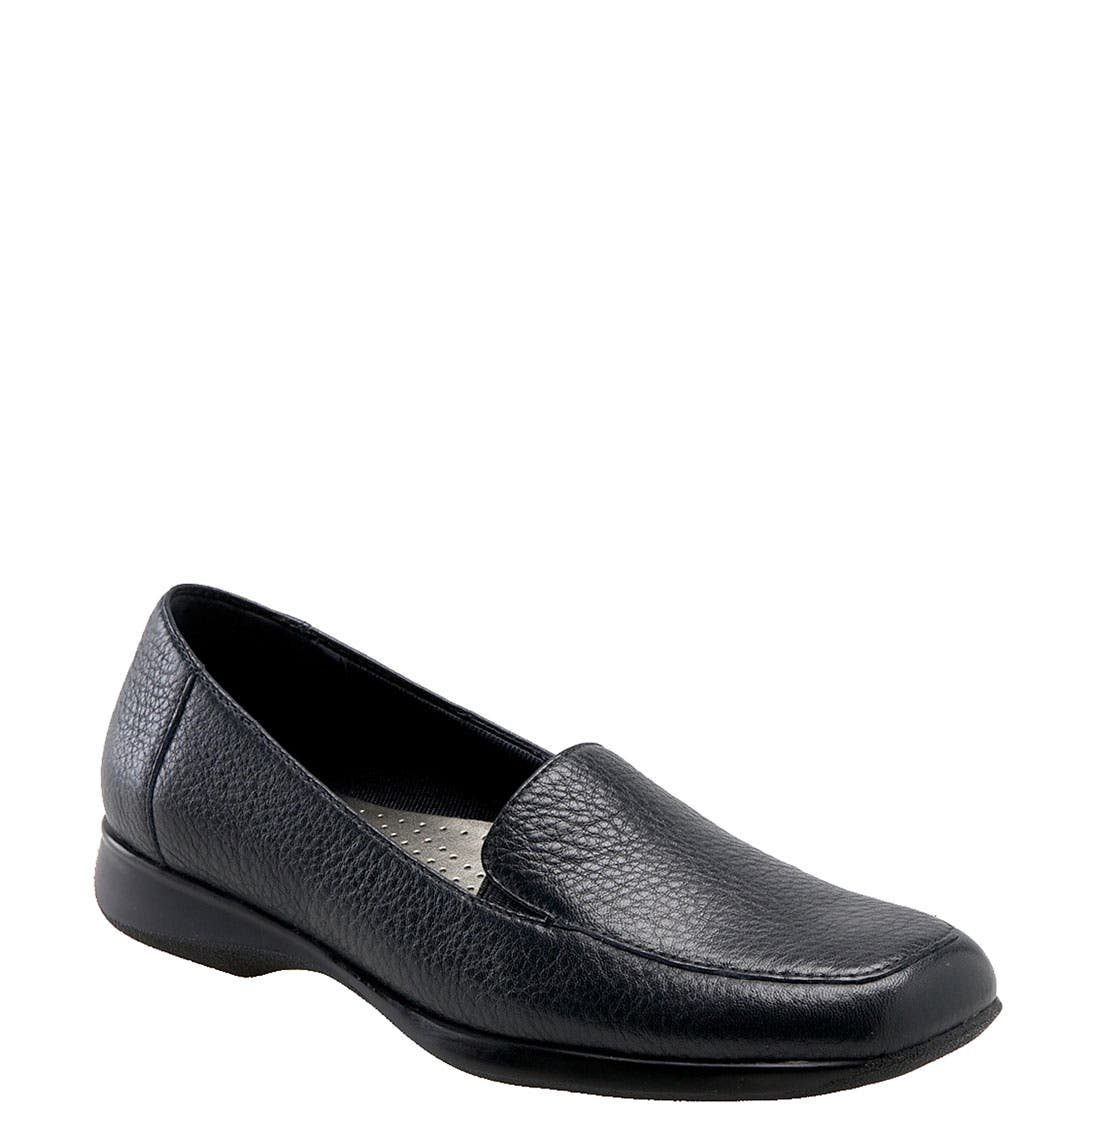 'Jenn' Loafer,                             Main thumbnail 1, color,                             Navy Soft Tumbled Leather